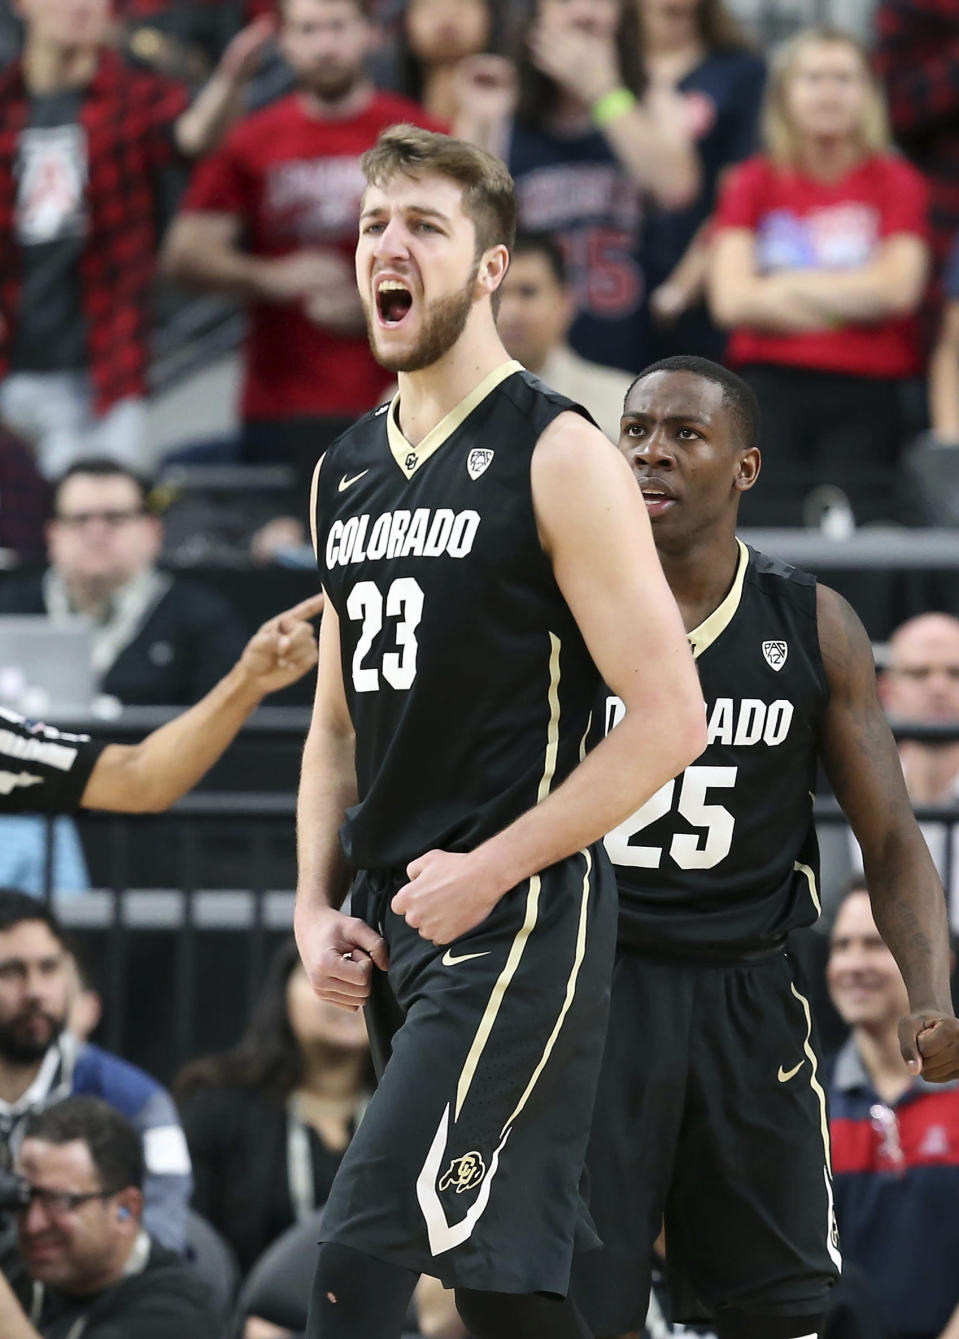 Colorado's Lucas Siewert (23) reacts after sinking a 3-point shot during the first half of an NCAA college basketball game against Arizona in the quarterfinals of the Pac-12 men's tournament Thursday, March 8, 2018, in Las Vegas. (AP Photo/Isaac Brekken)